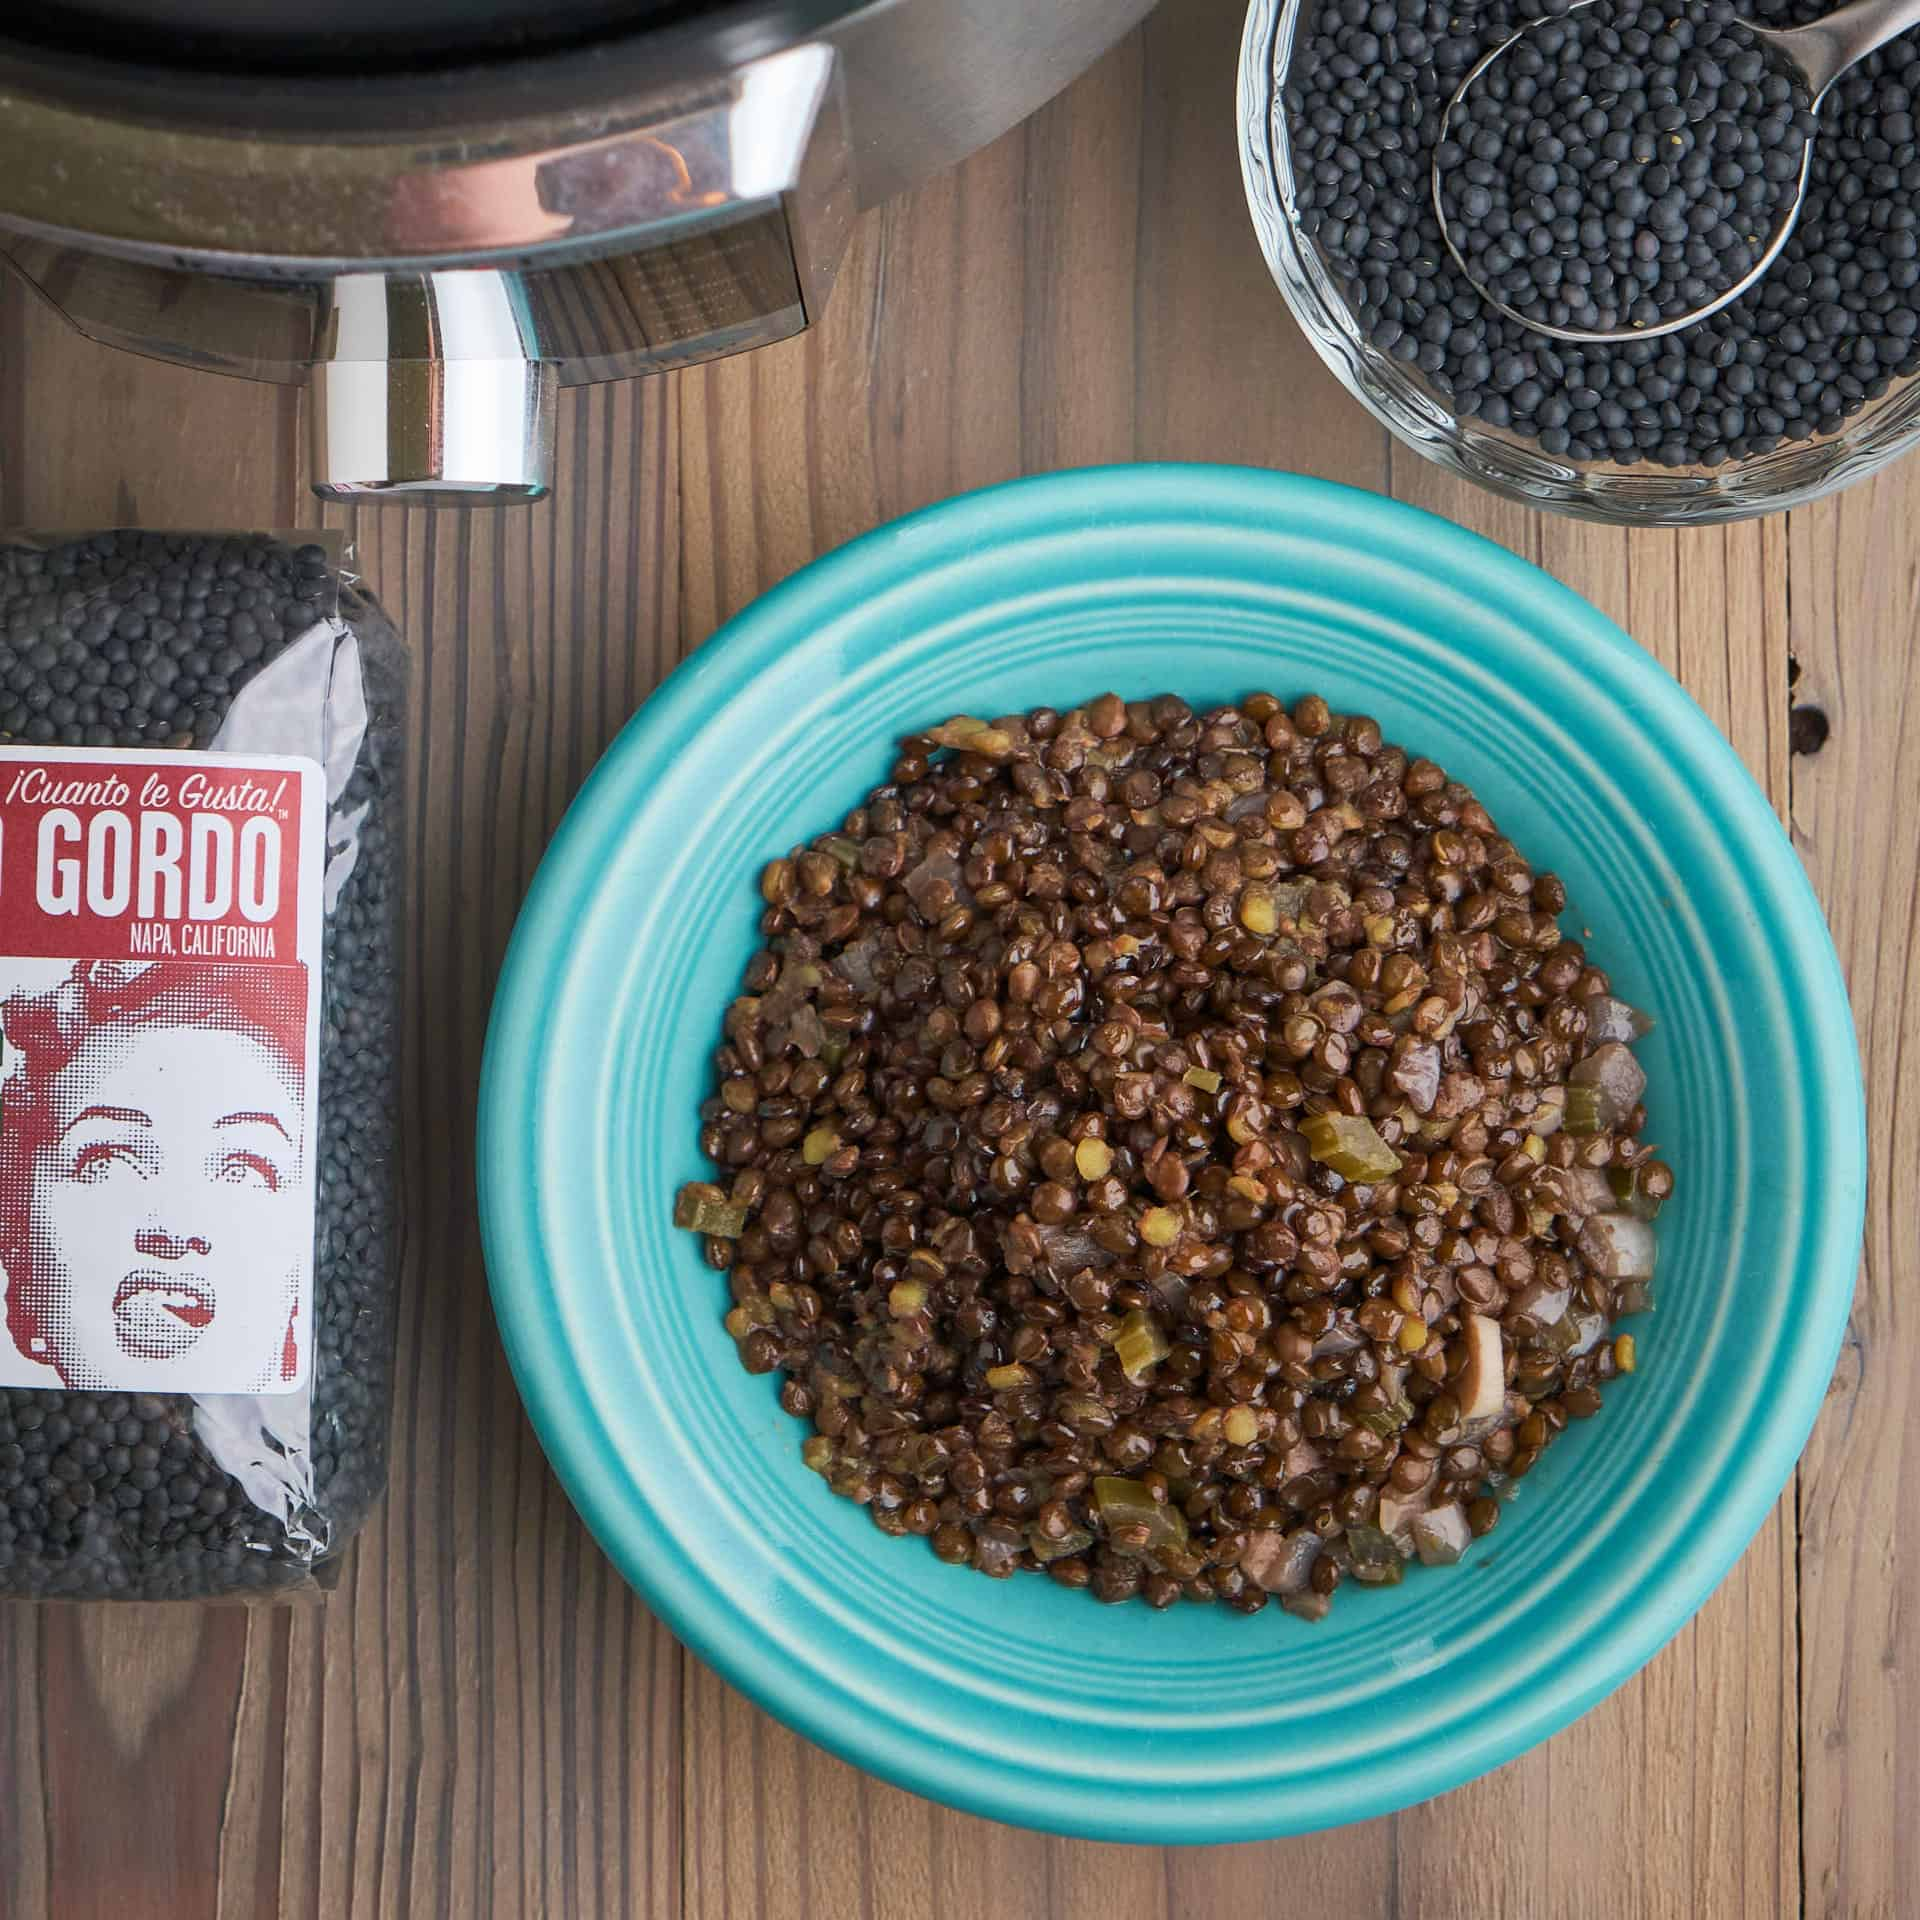 A bowl of cooked beluga lentils, next to a bowl and bag of uncooked lentils, and an Instant Pot